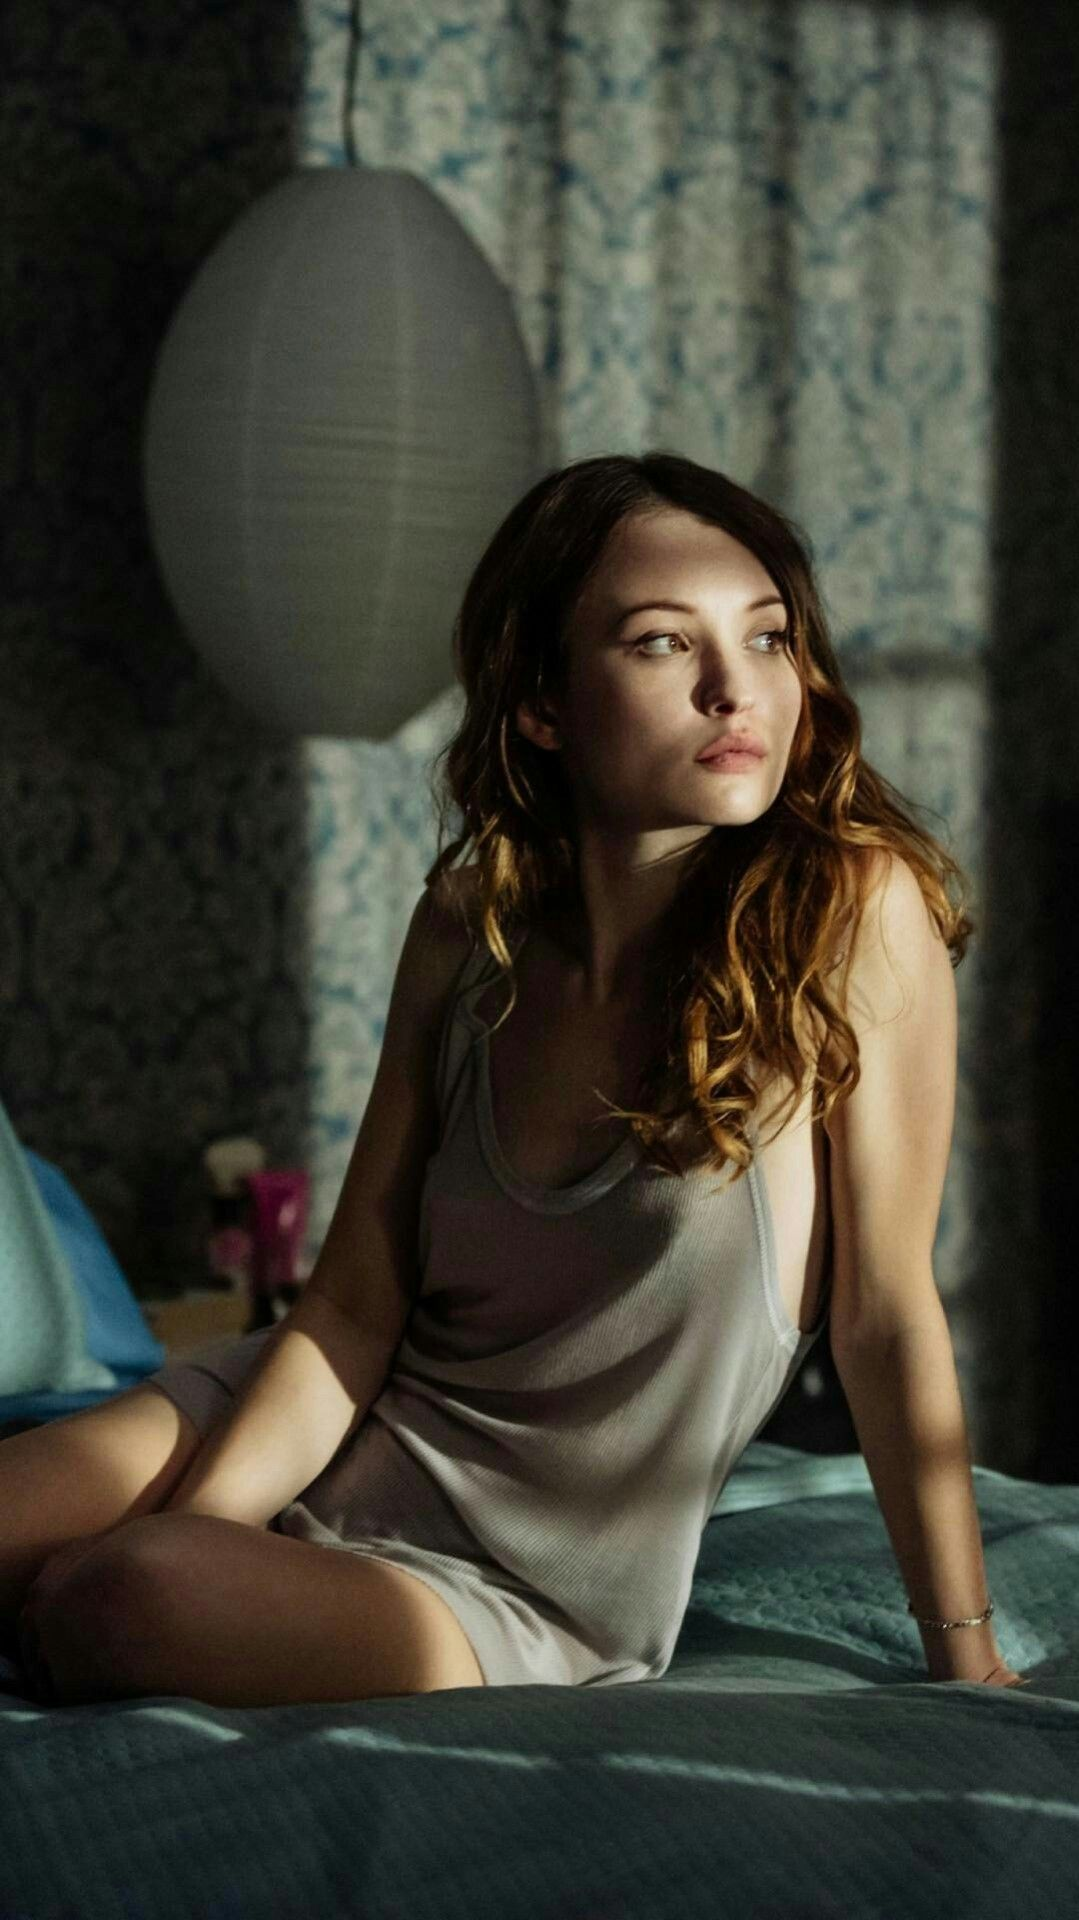 Emily Browning: Emily Browning